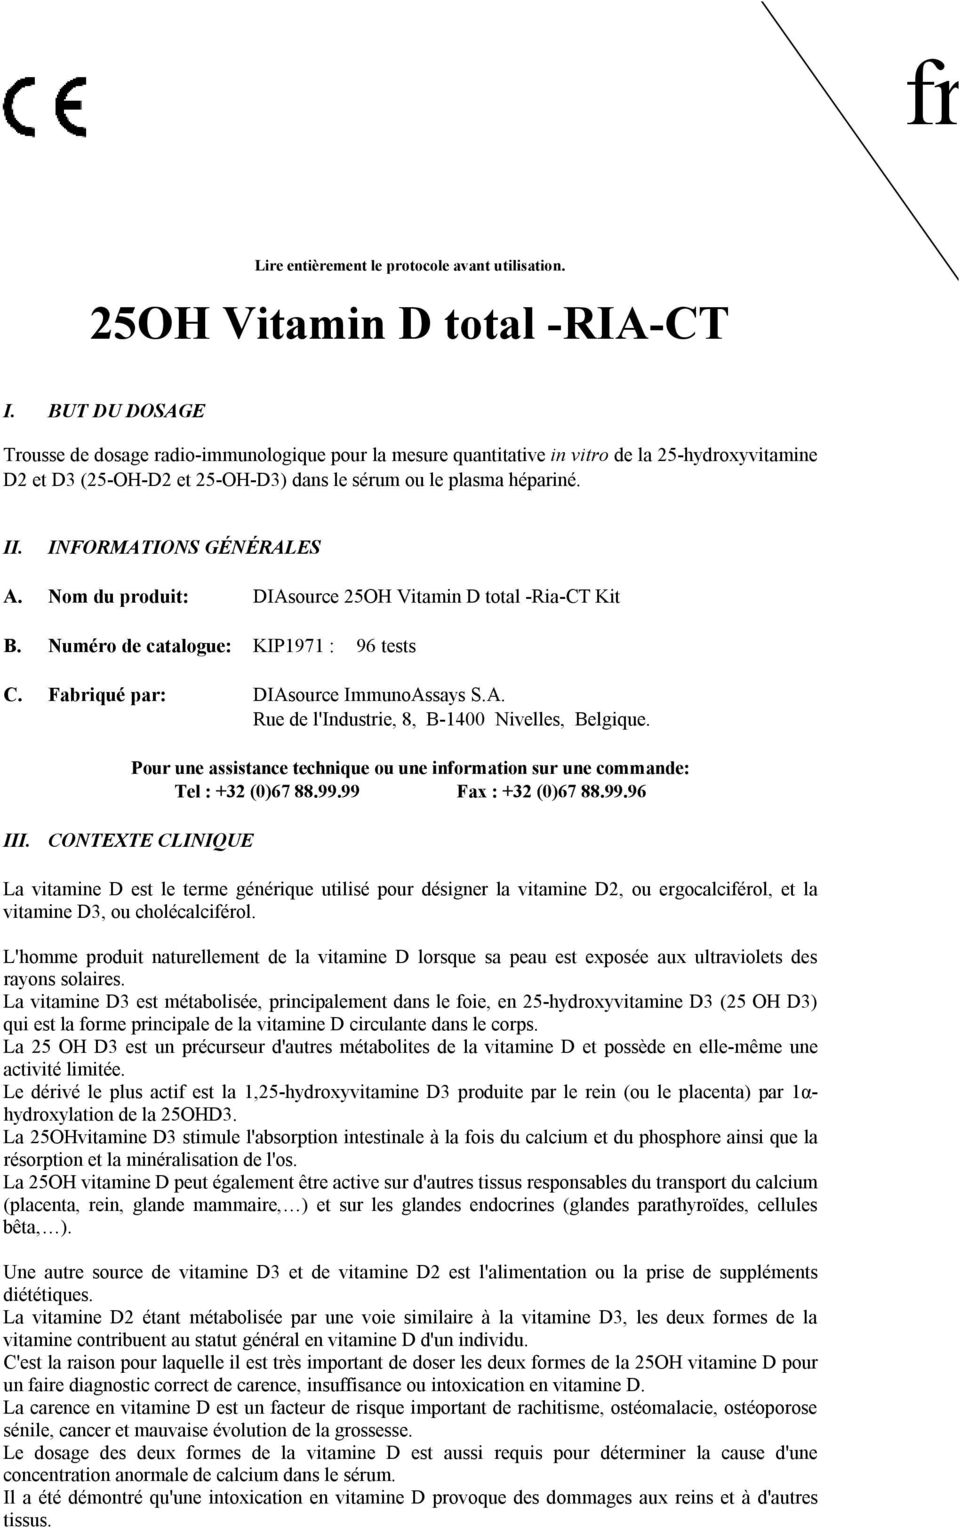 IFORMATIOS GÉÉRALES A. om du produit: DIAsource 25OH Vitamin D total RiaCT Kit B. uméro de catalogue: KIP1971 : 96 tests C. Fabriqué par: DIAsource ImmunoAssays S.A. Rue de l'industrie, 8, B14 ivelles, Belgique.